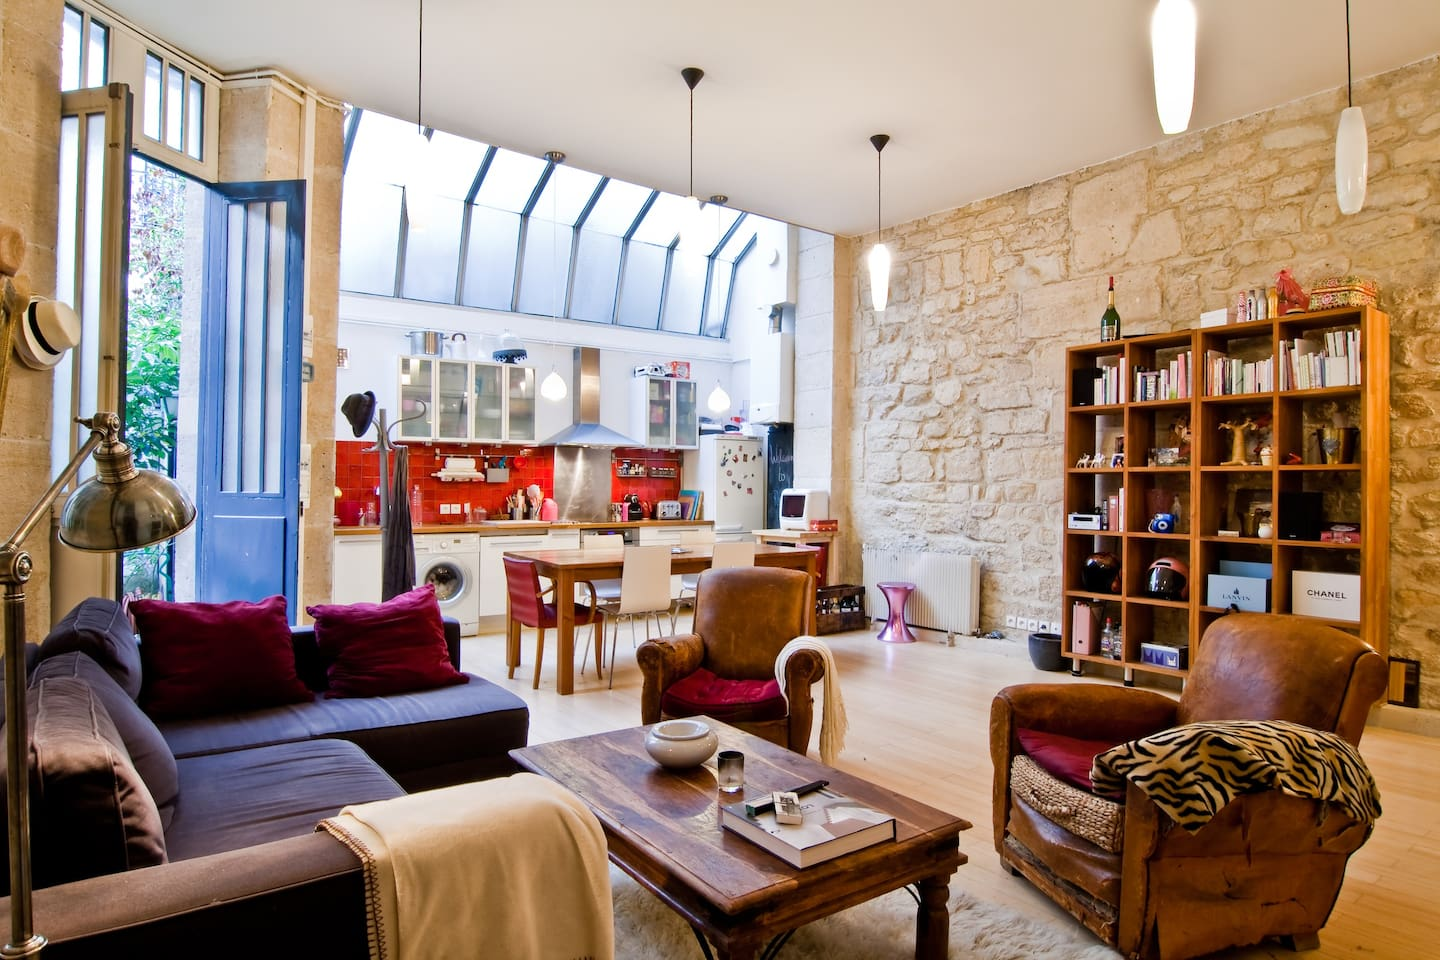 Loft in Le Marais (80sq meters)